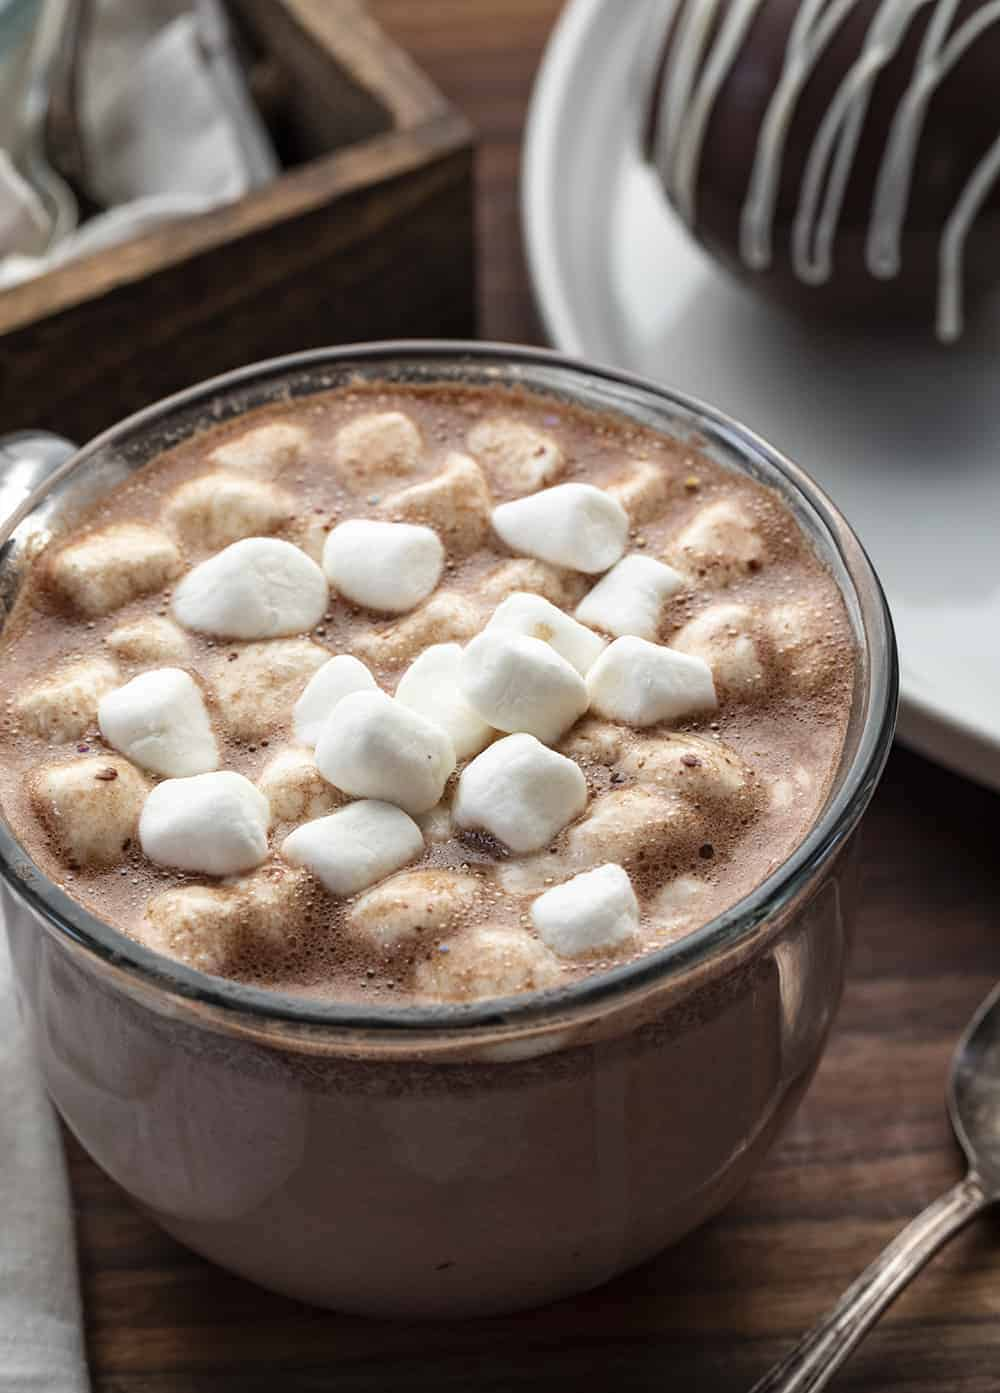 Cup of Hot Chocolate Using Hot Chocolate Bombs